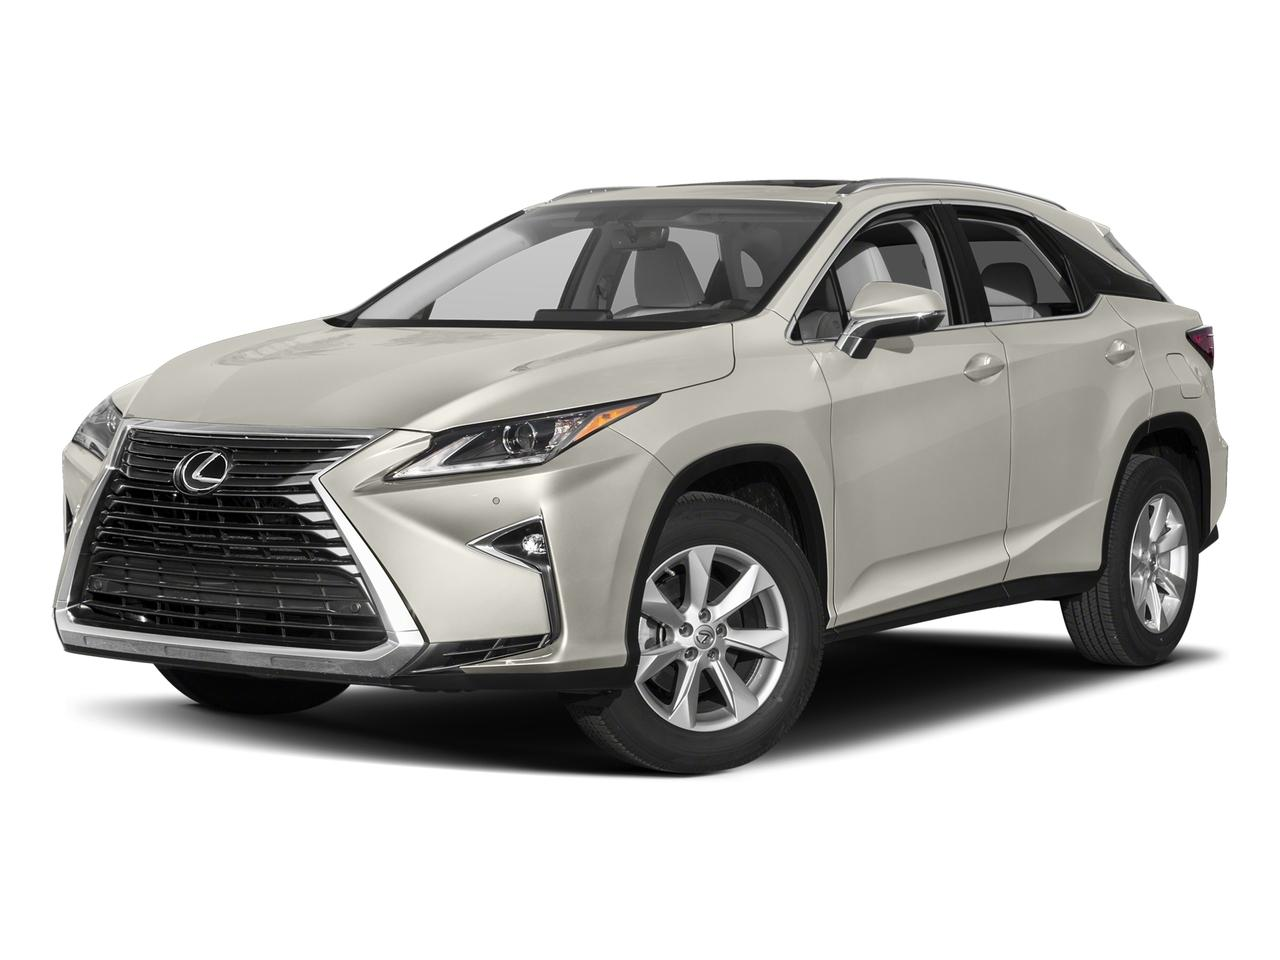 2017 Lexus RX 350 Vehicle Photo in Trevose, PA 19053-4984